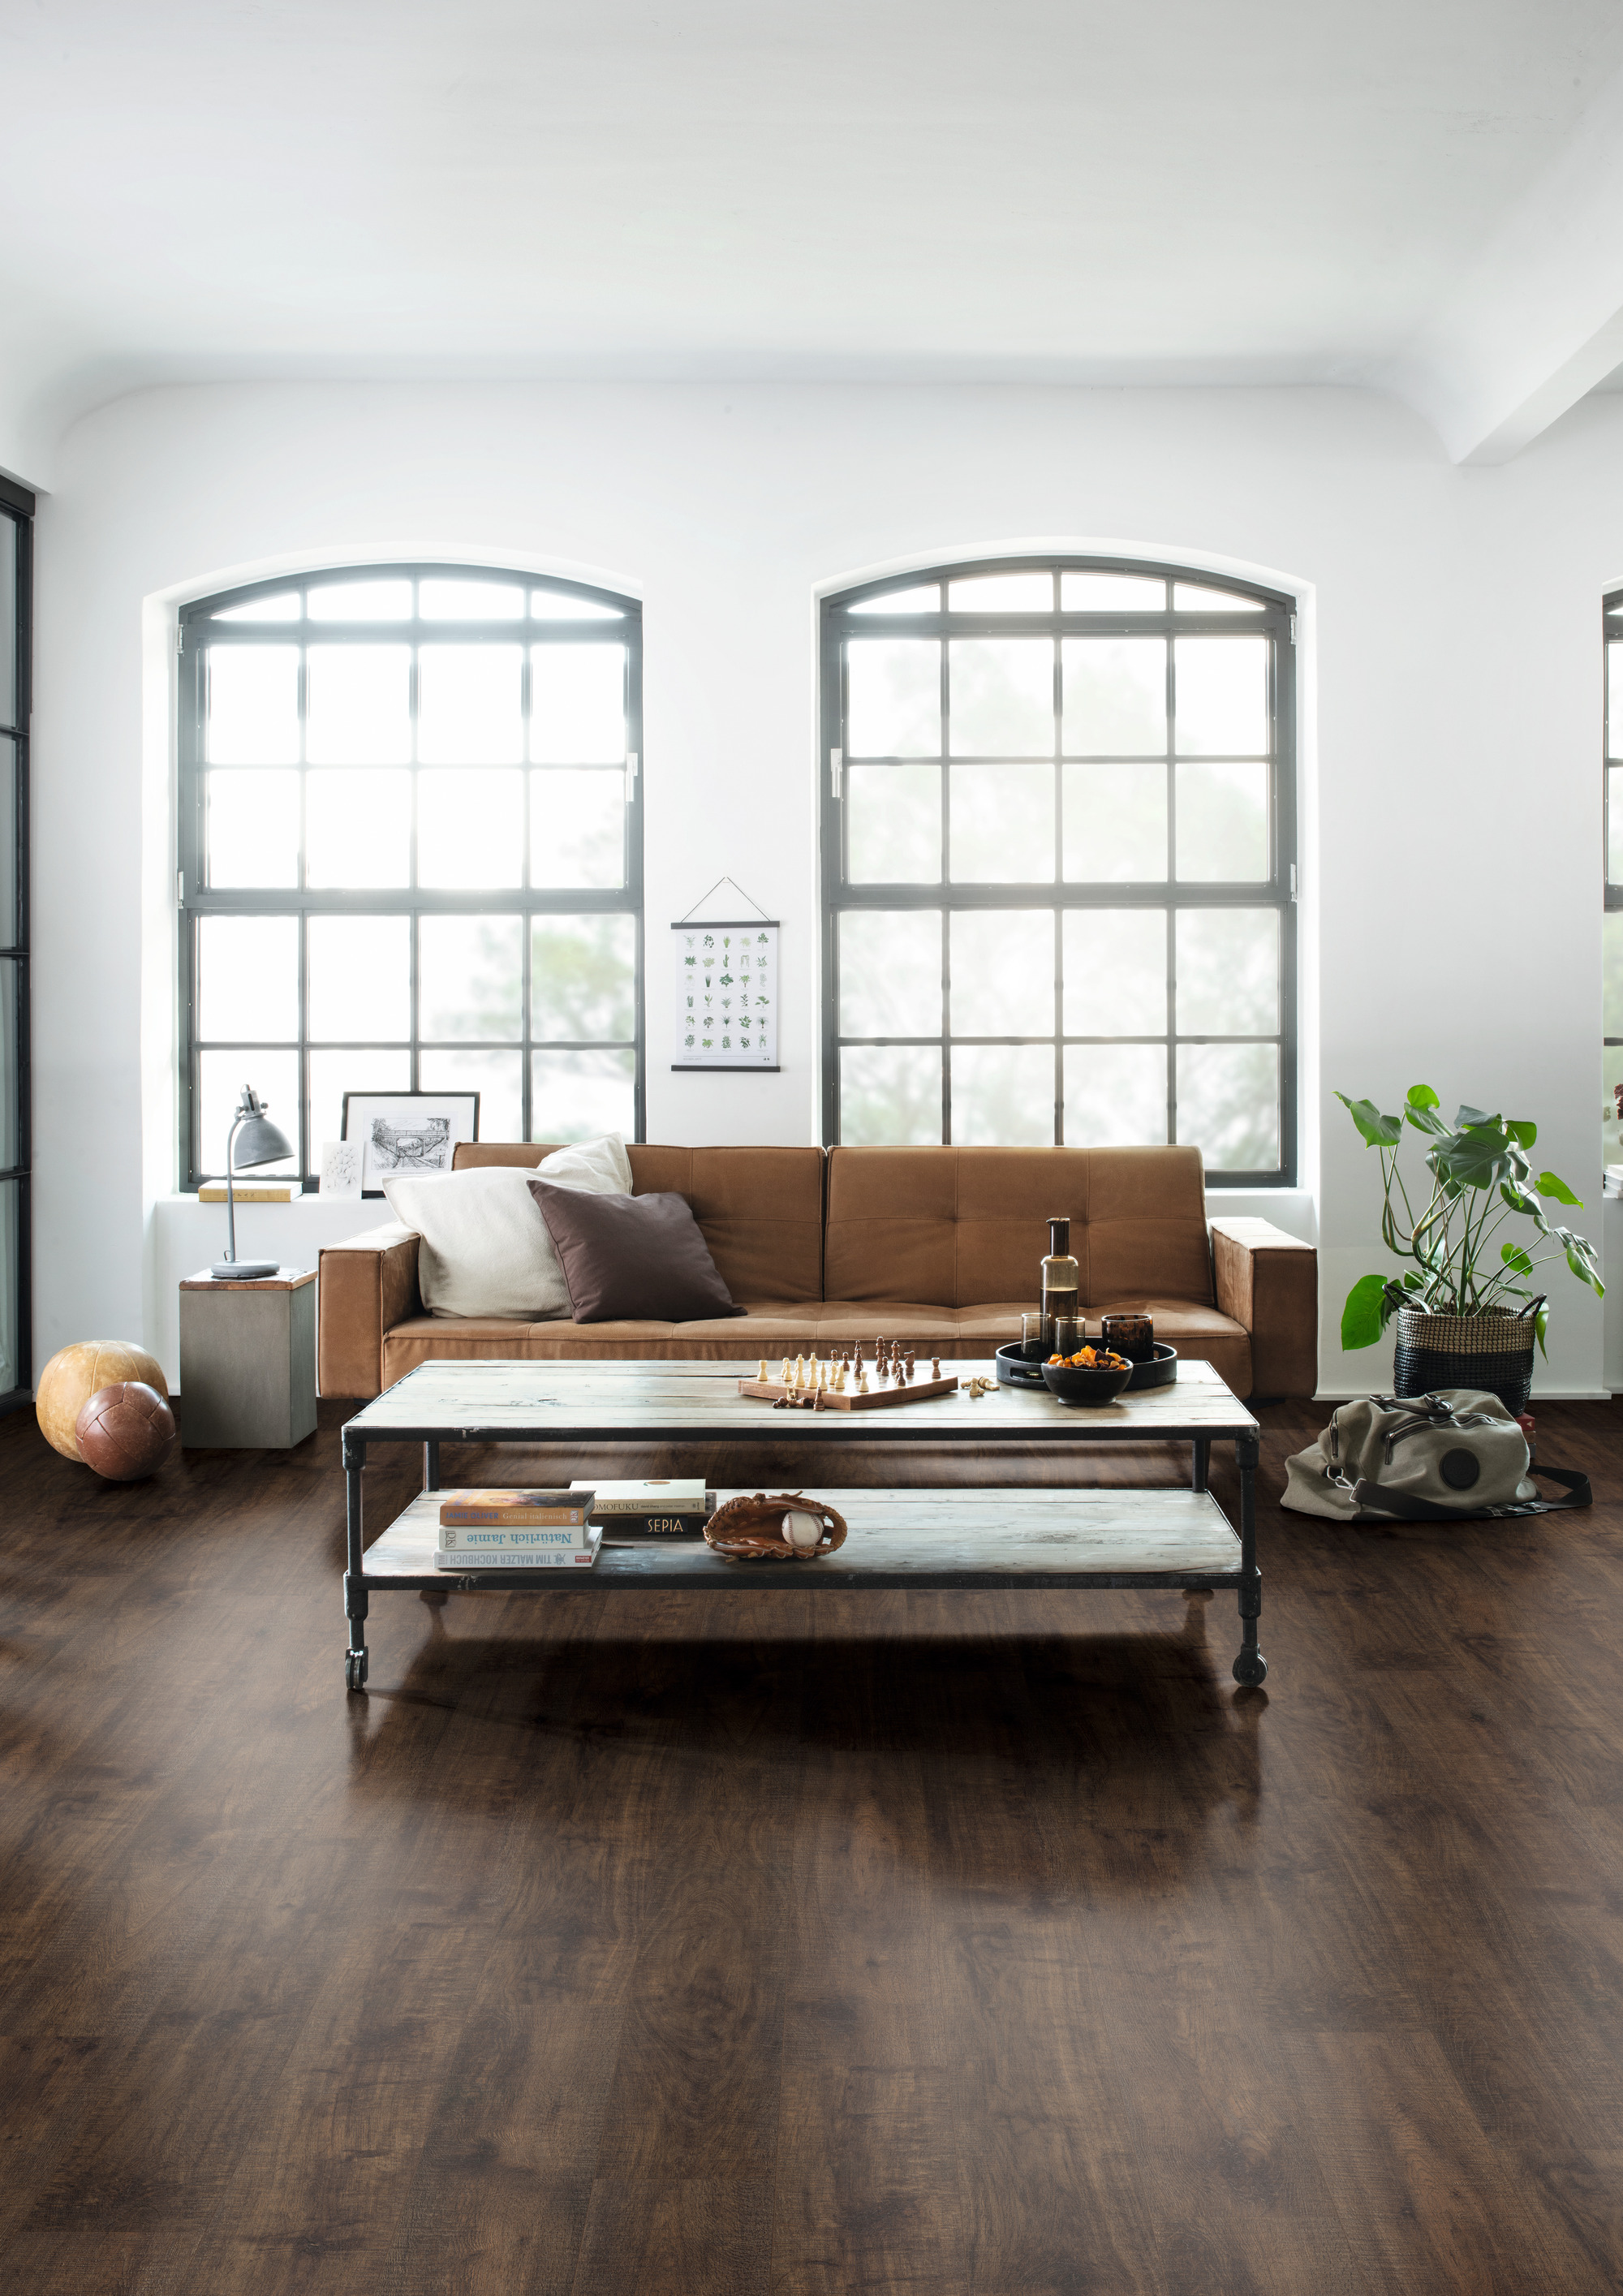 Trend Setting with Custom Wood-Based Interior Finishes